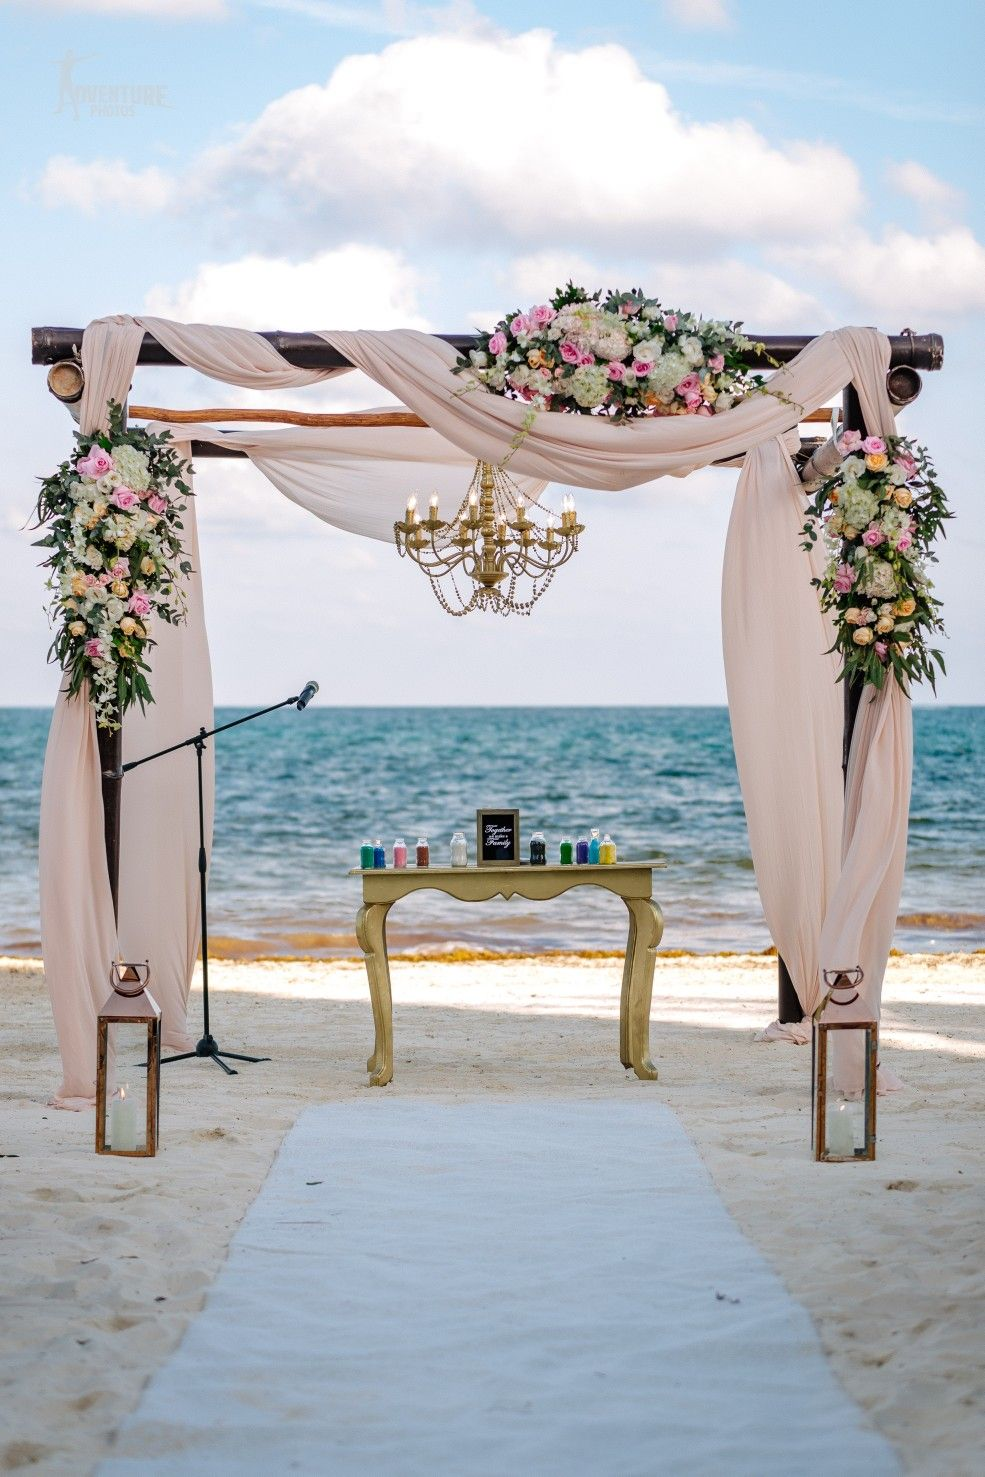 Pinterest cutipieanu Beach wedding aisles, Gazebo